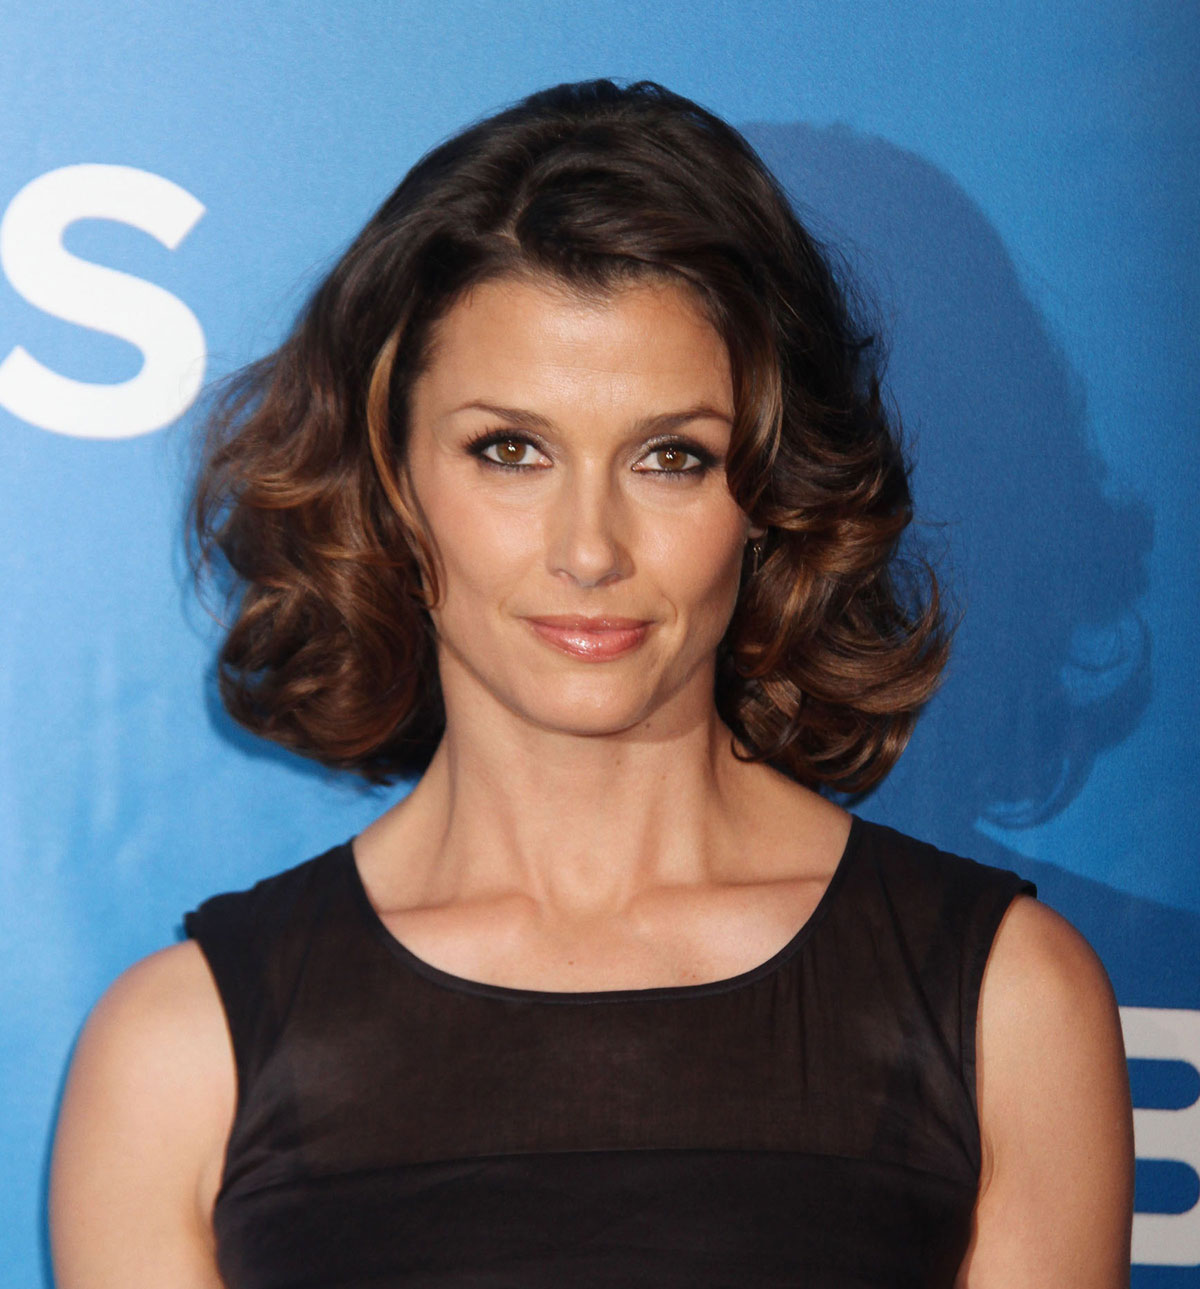 Bridget Moynahan: Bridget Moynahan 2018: Husband, Tattoos, Smoking & Body